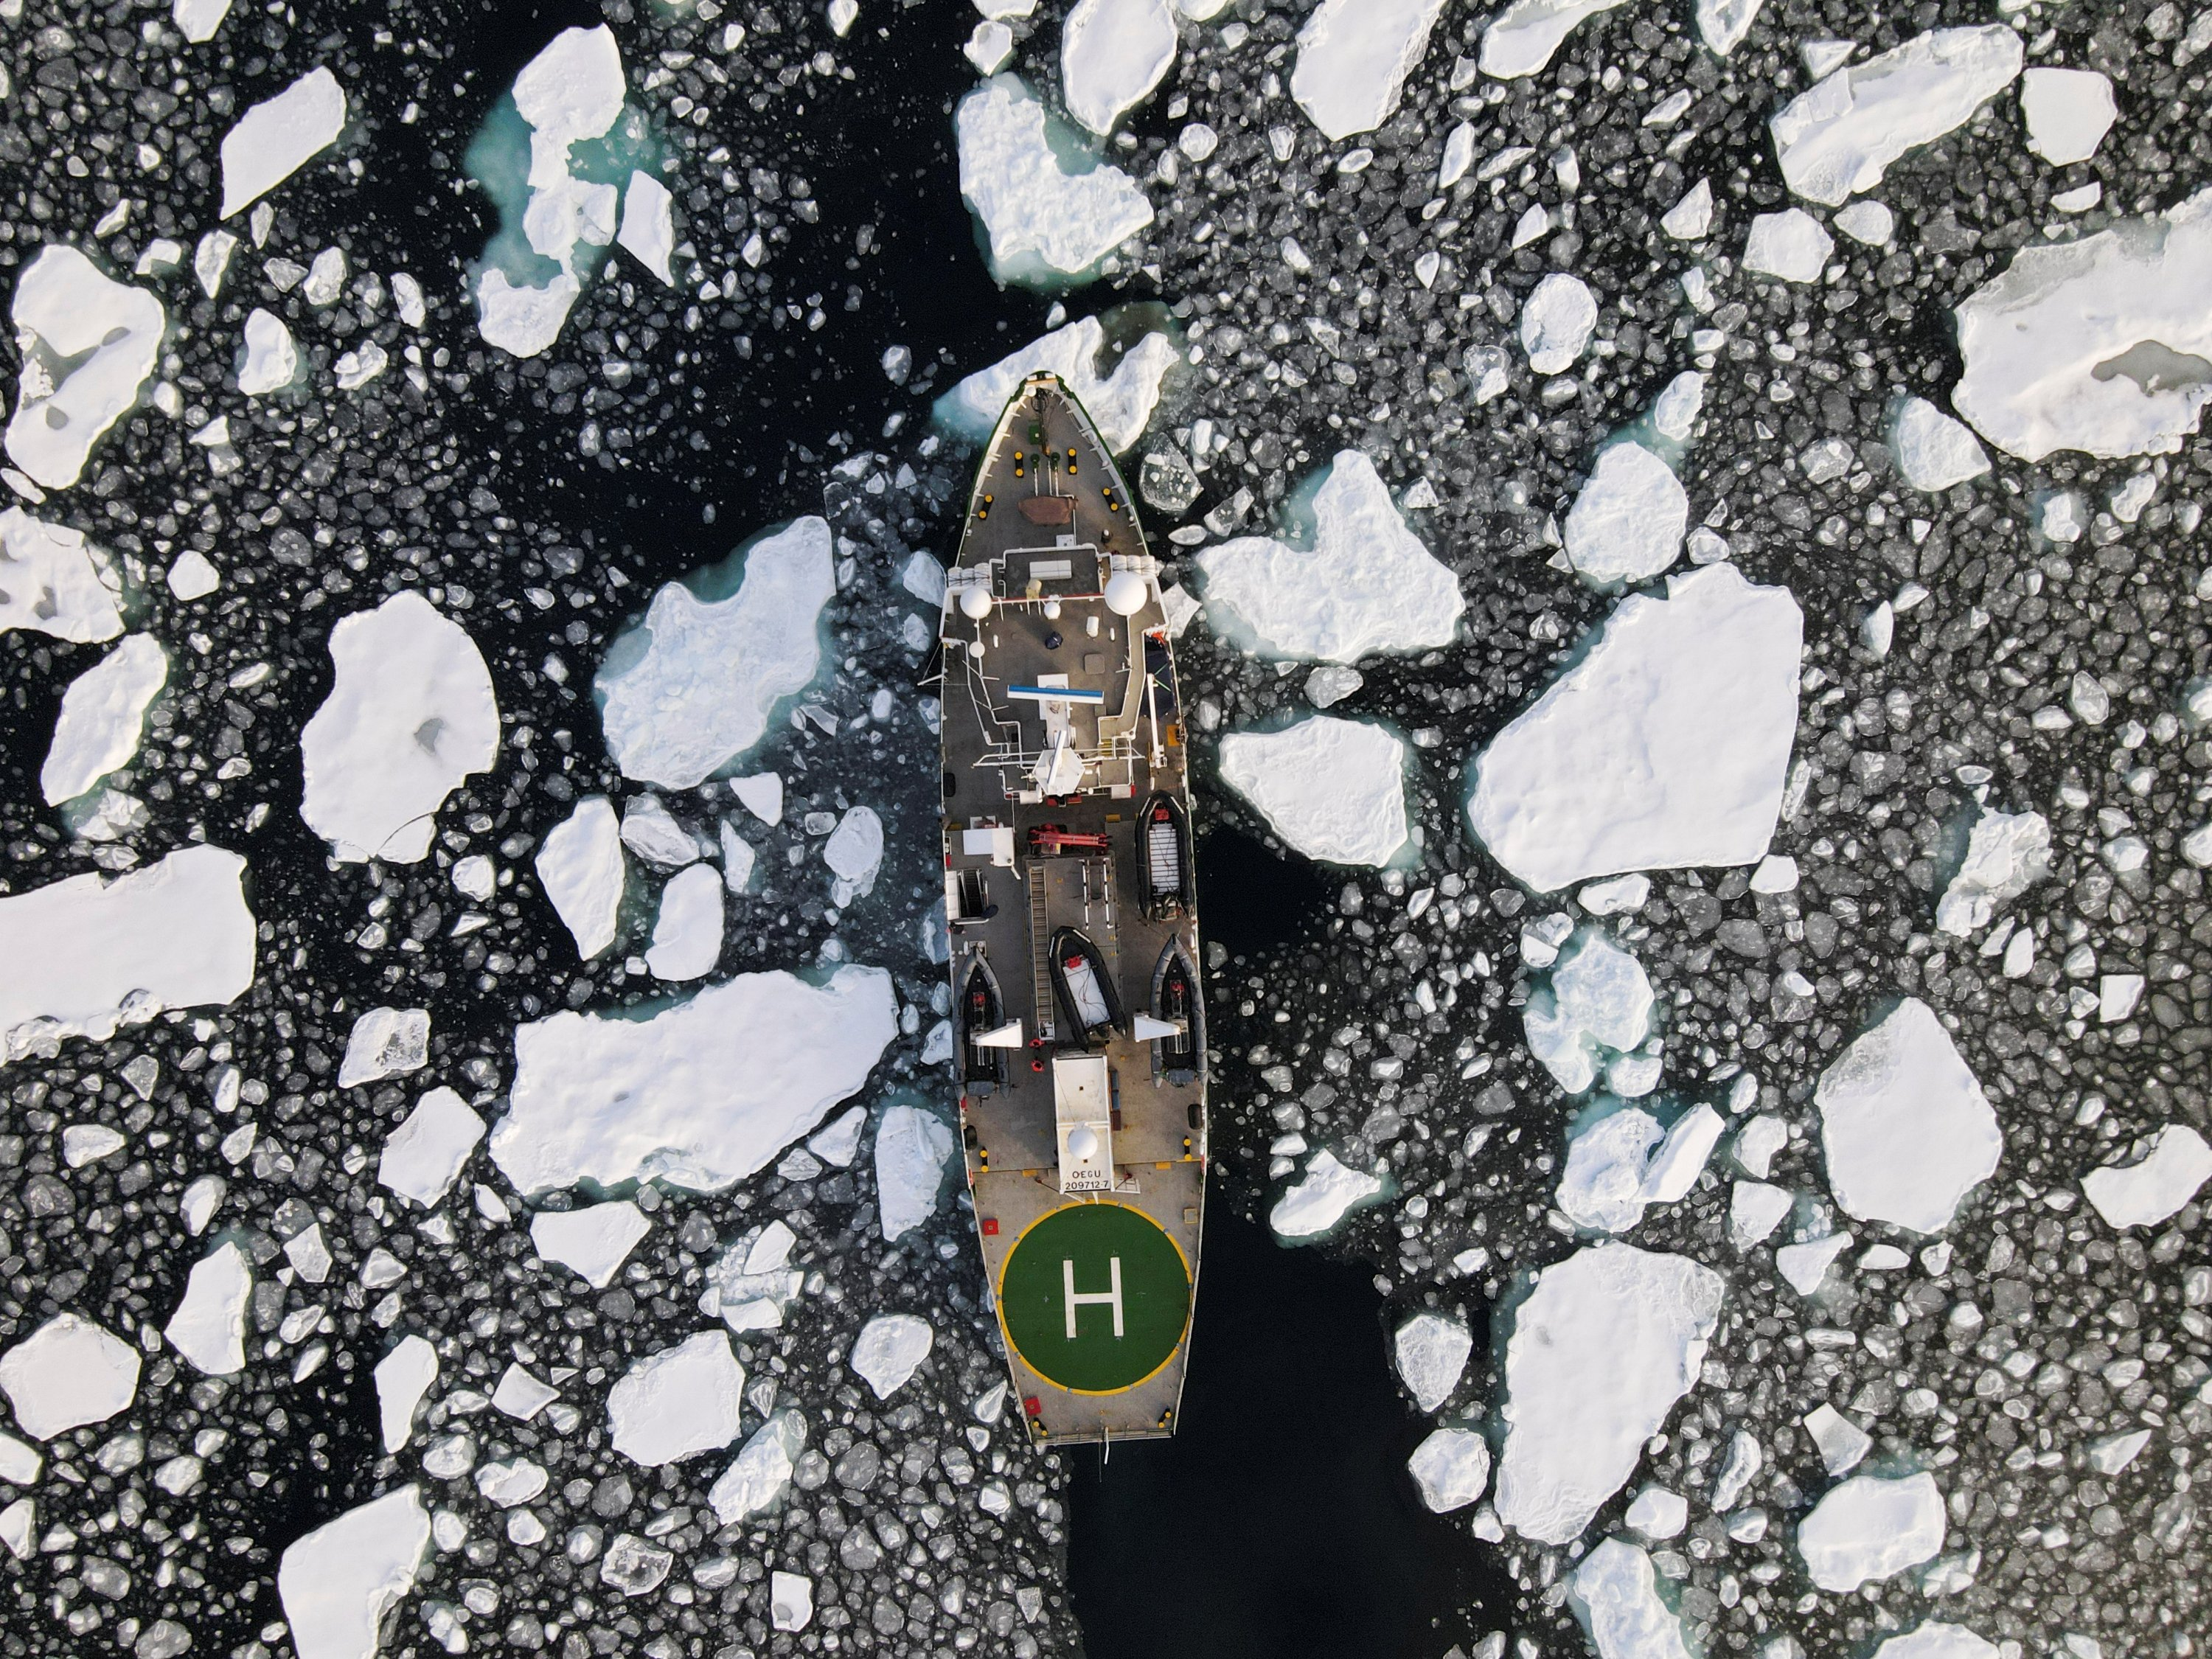 Greenpeace's Arctic Sunrise ship navigates through floating ice in the Arctic Ocean, Sept. 15, 2020. (Reuters Photo)